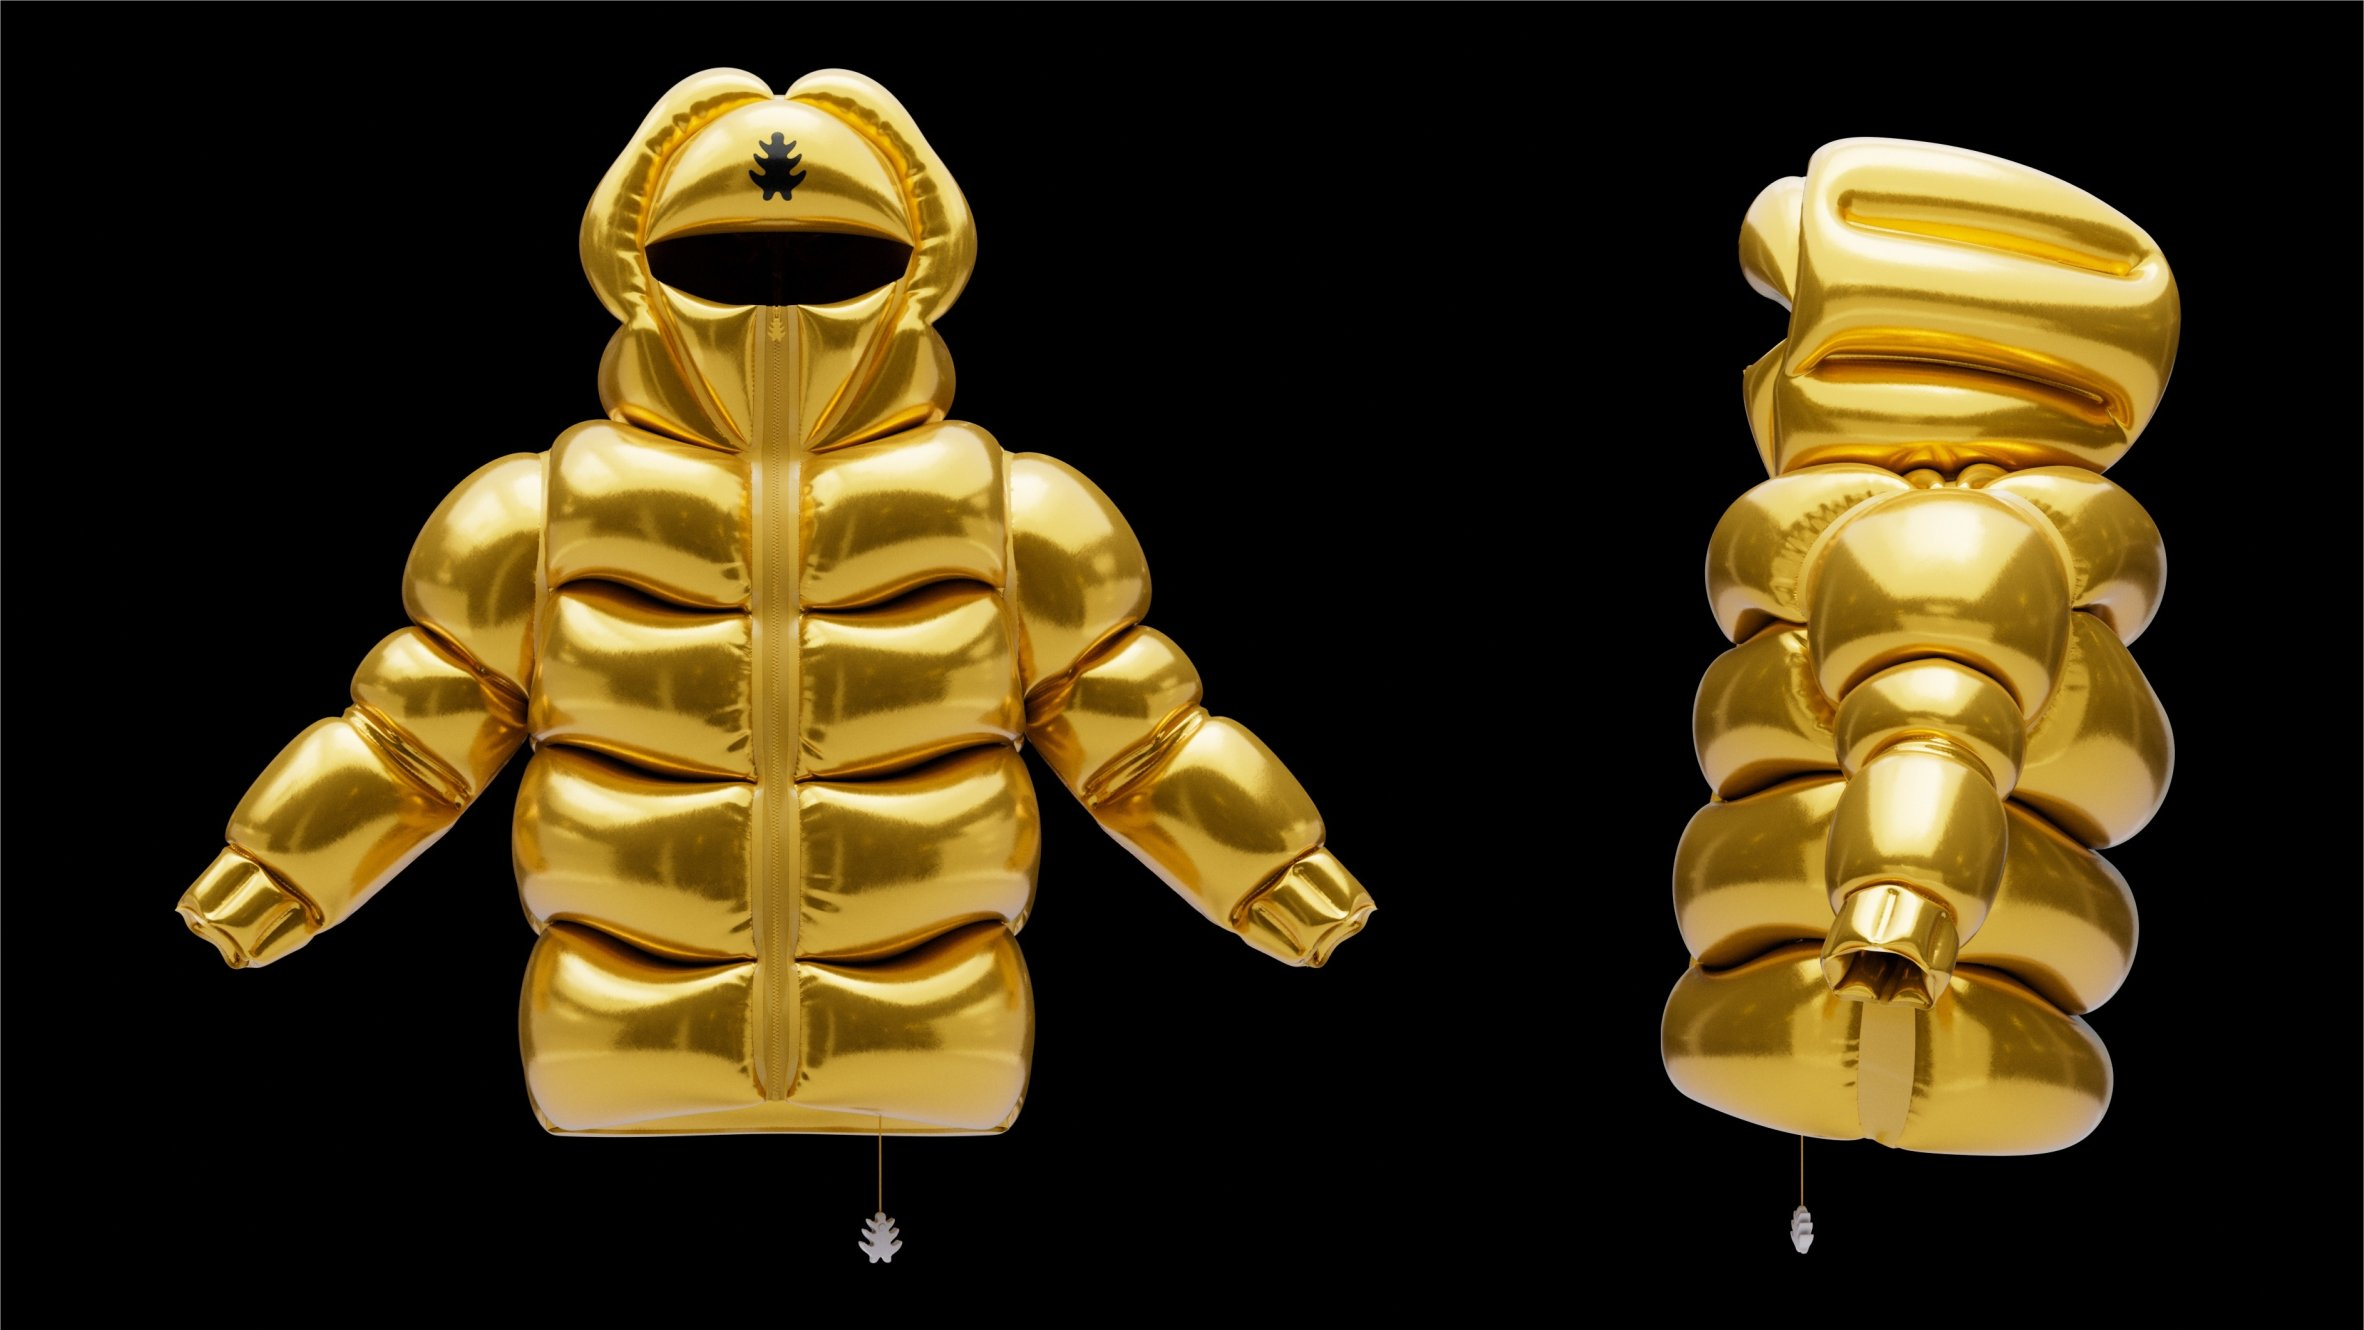 Front and side view of golden Helium-10000 jacket